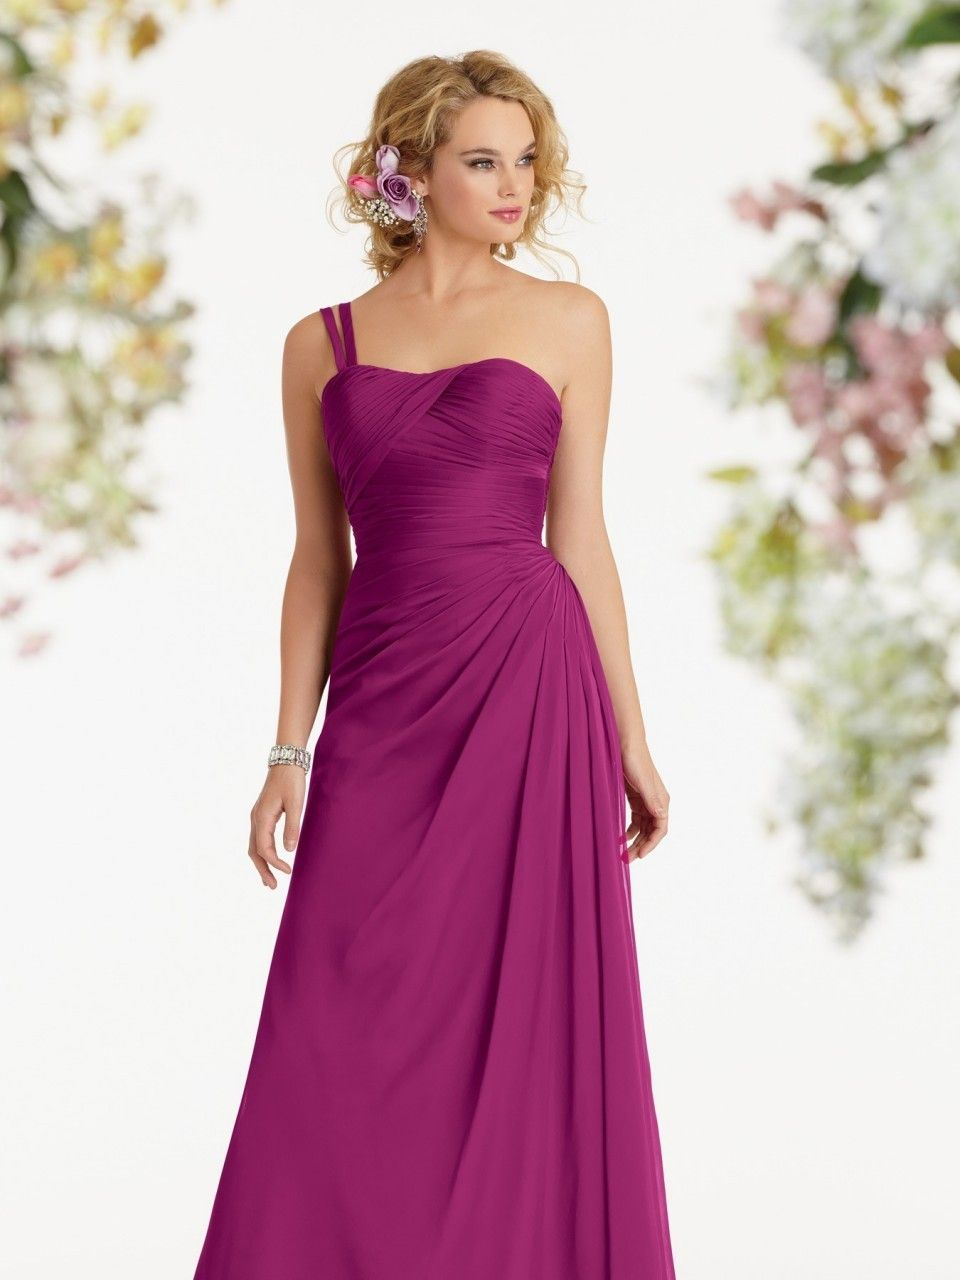 Único Vintage Looking Bridesmaid Dresses Ideas Ornamento Elaboración ...